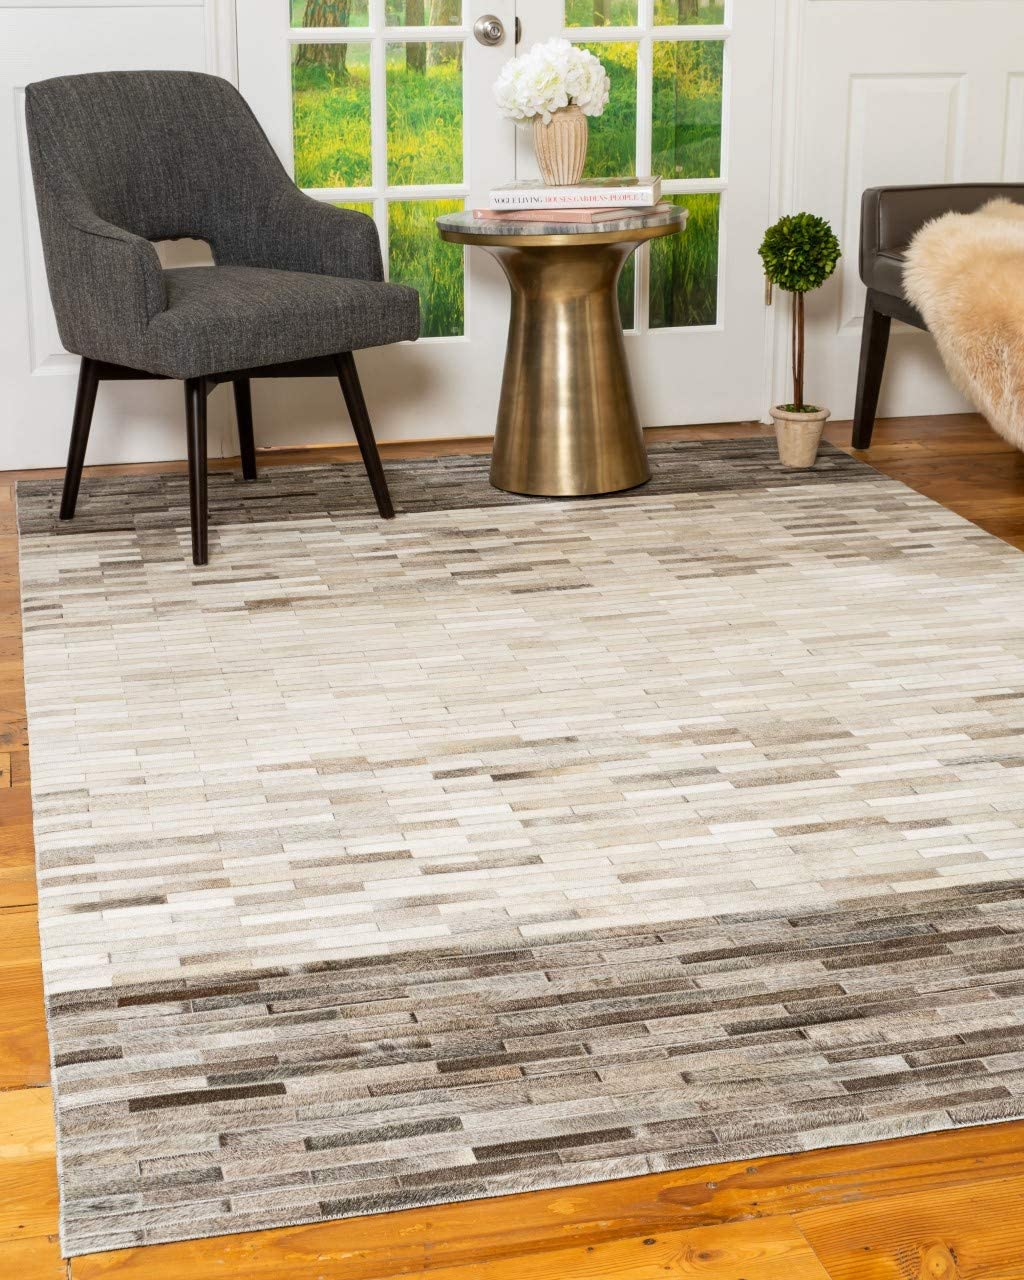 Natural Area Rugs Hand Loomed Mesa Multi-Color Cowhide Patchwork Leather Rug 8 x 10